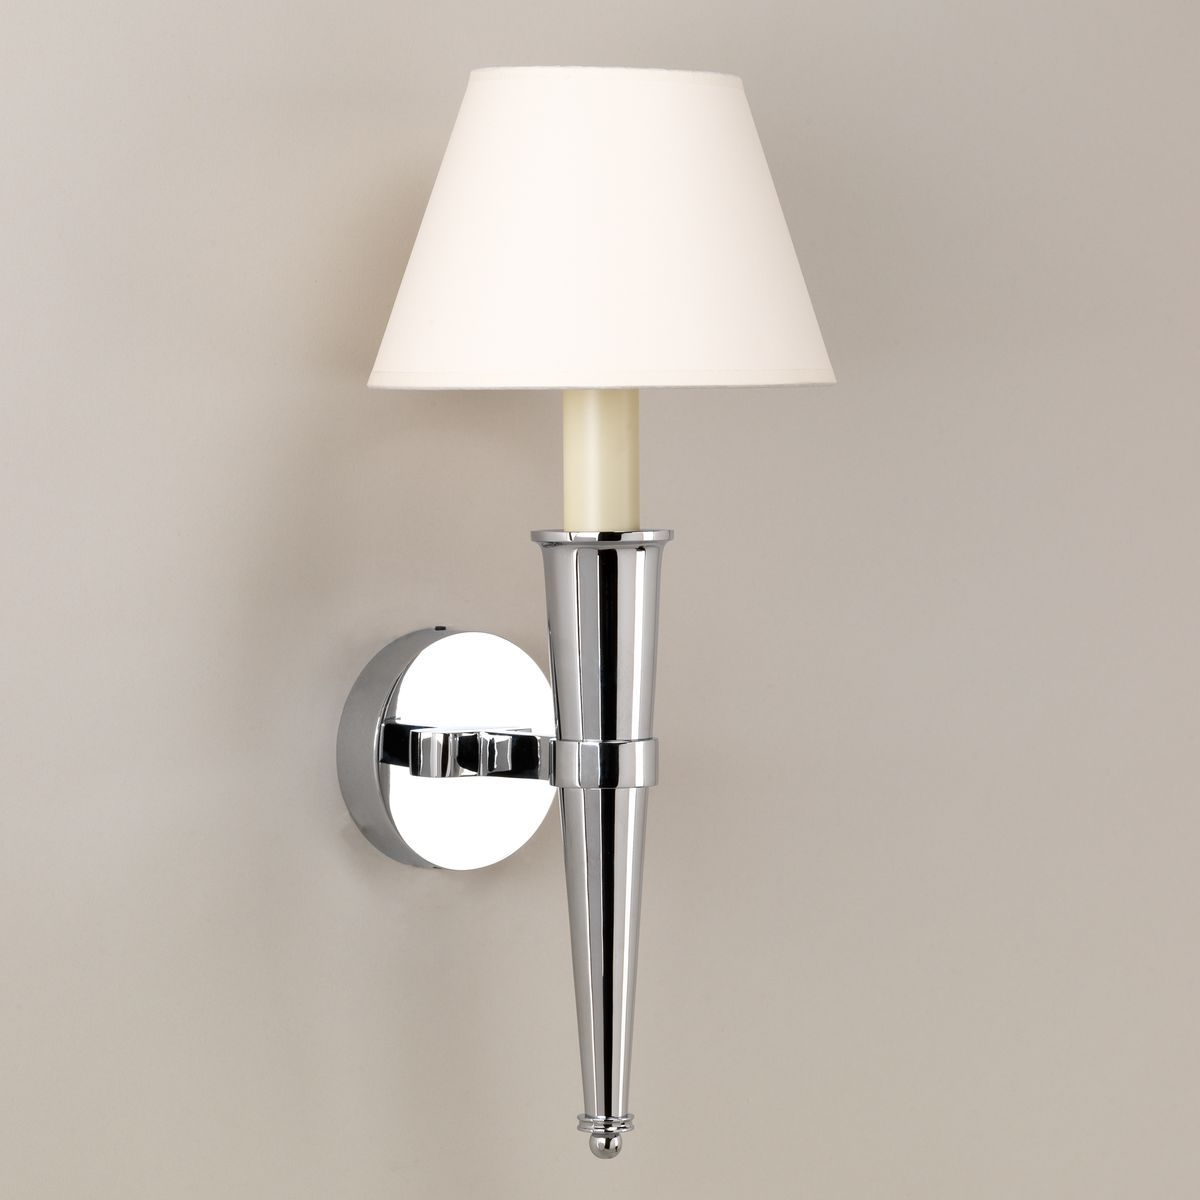 Arras Cone Bathroom Wall Light-Chrome